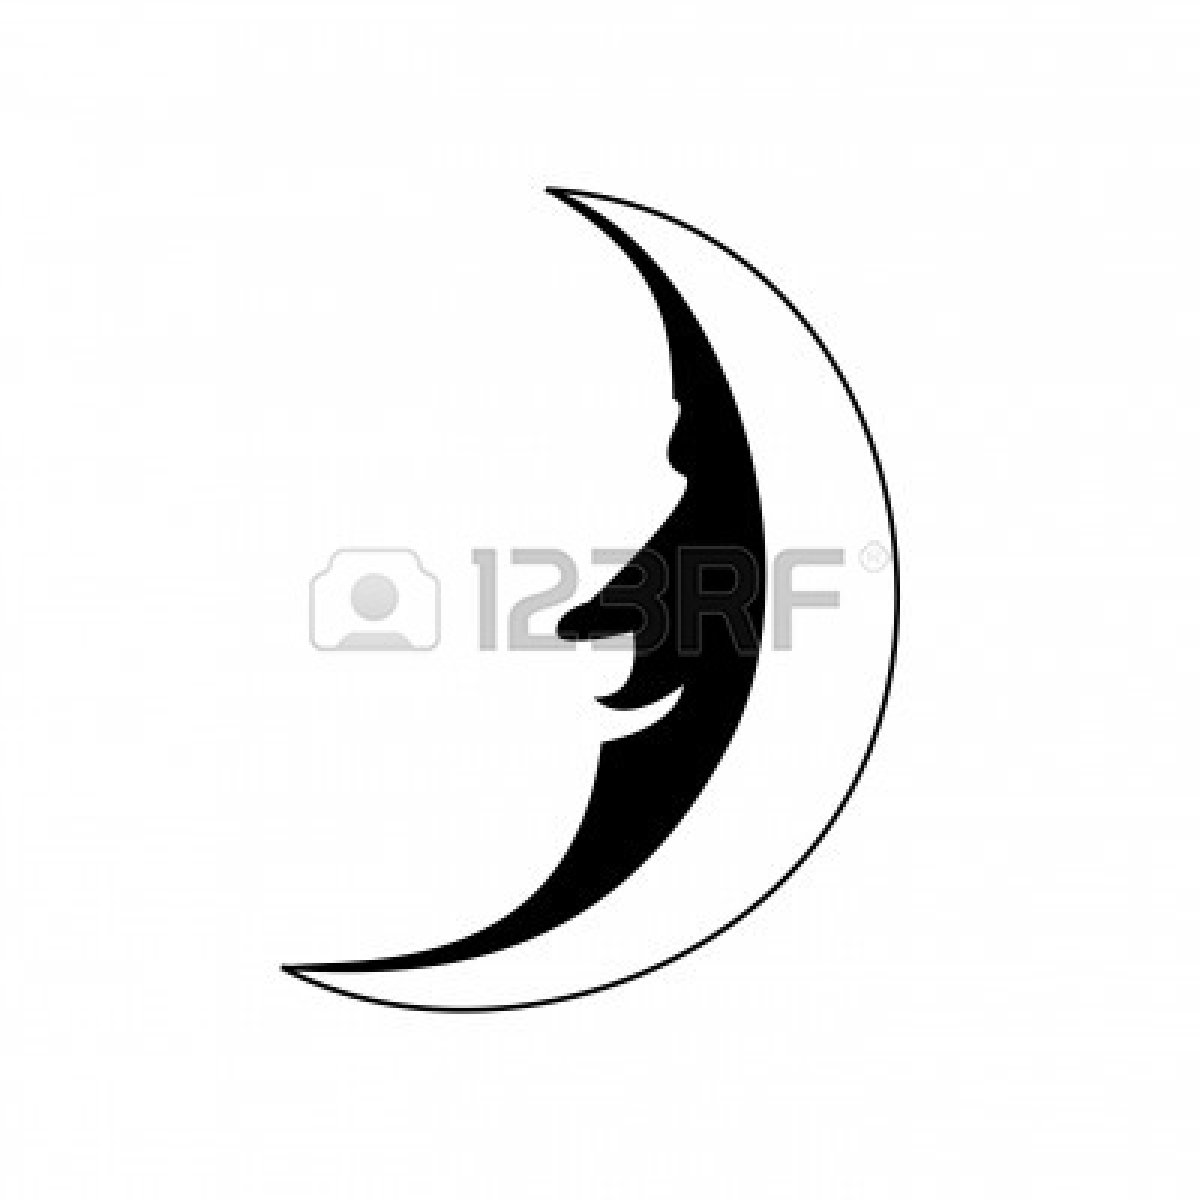 man in the moon clipart - photo #20